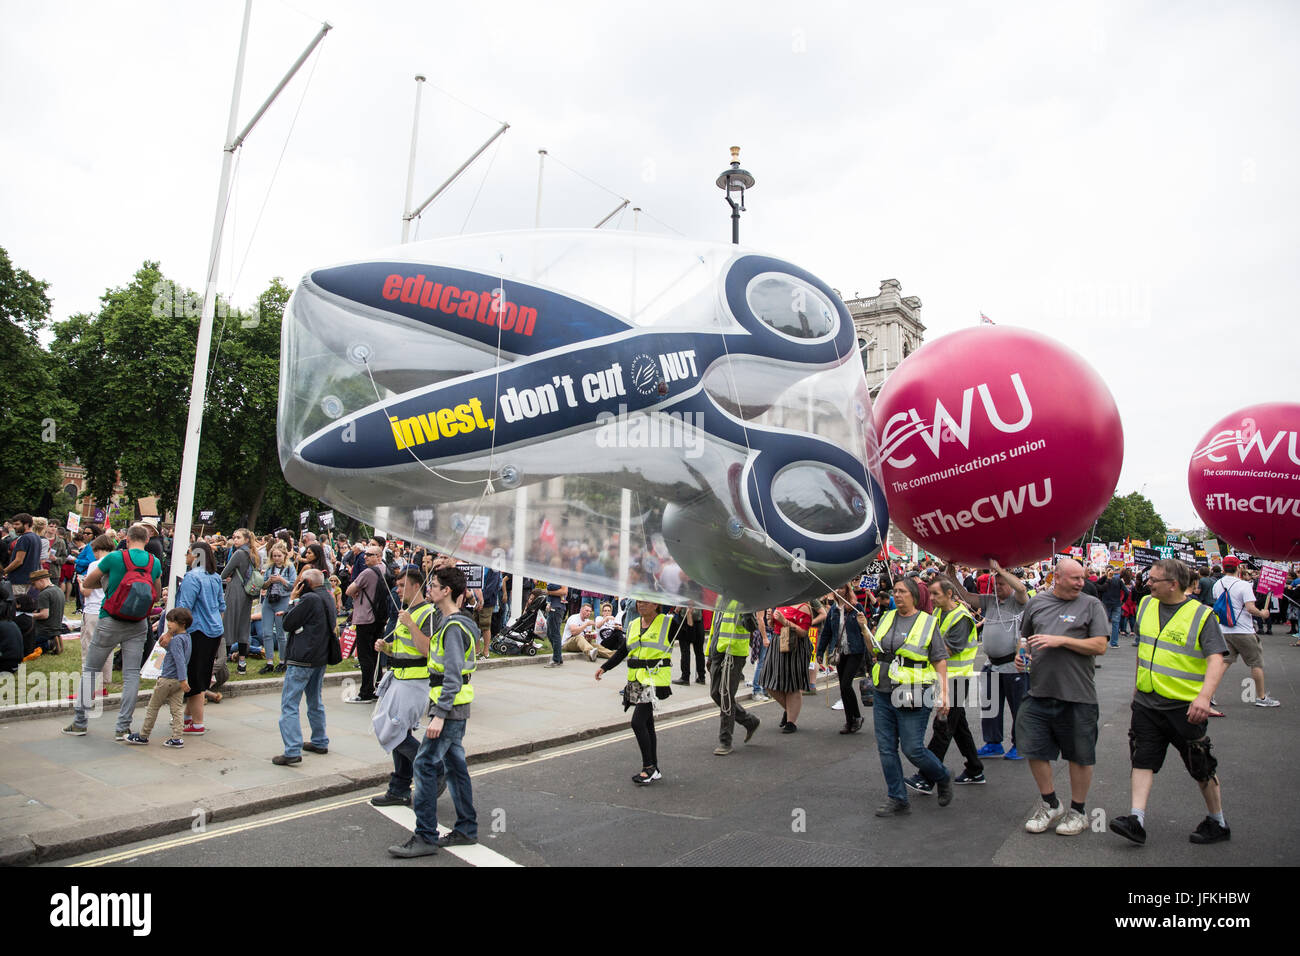 London, UK. 1st July, 2017. NUT and CWU members among thousands of people from many different campaign groups and - Stock Image